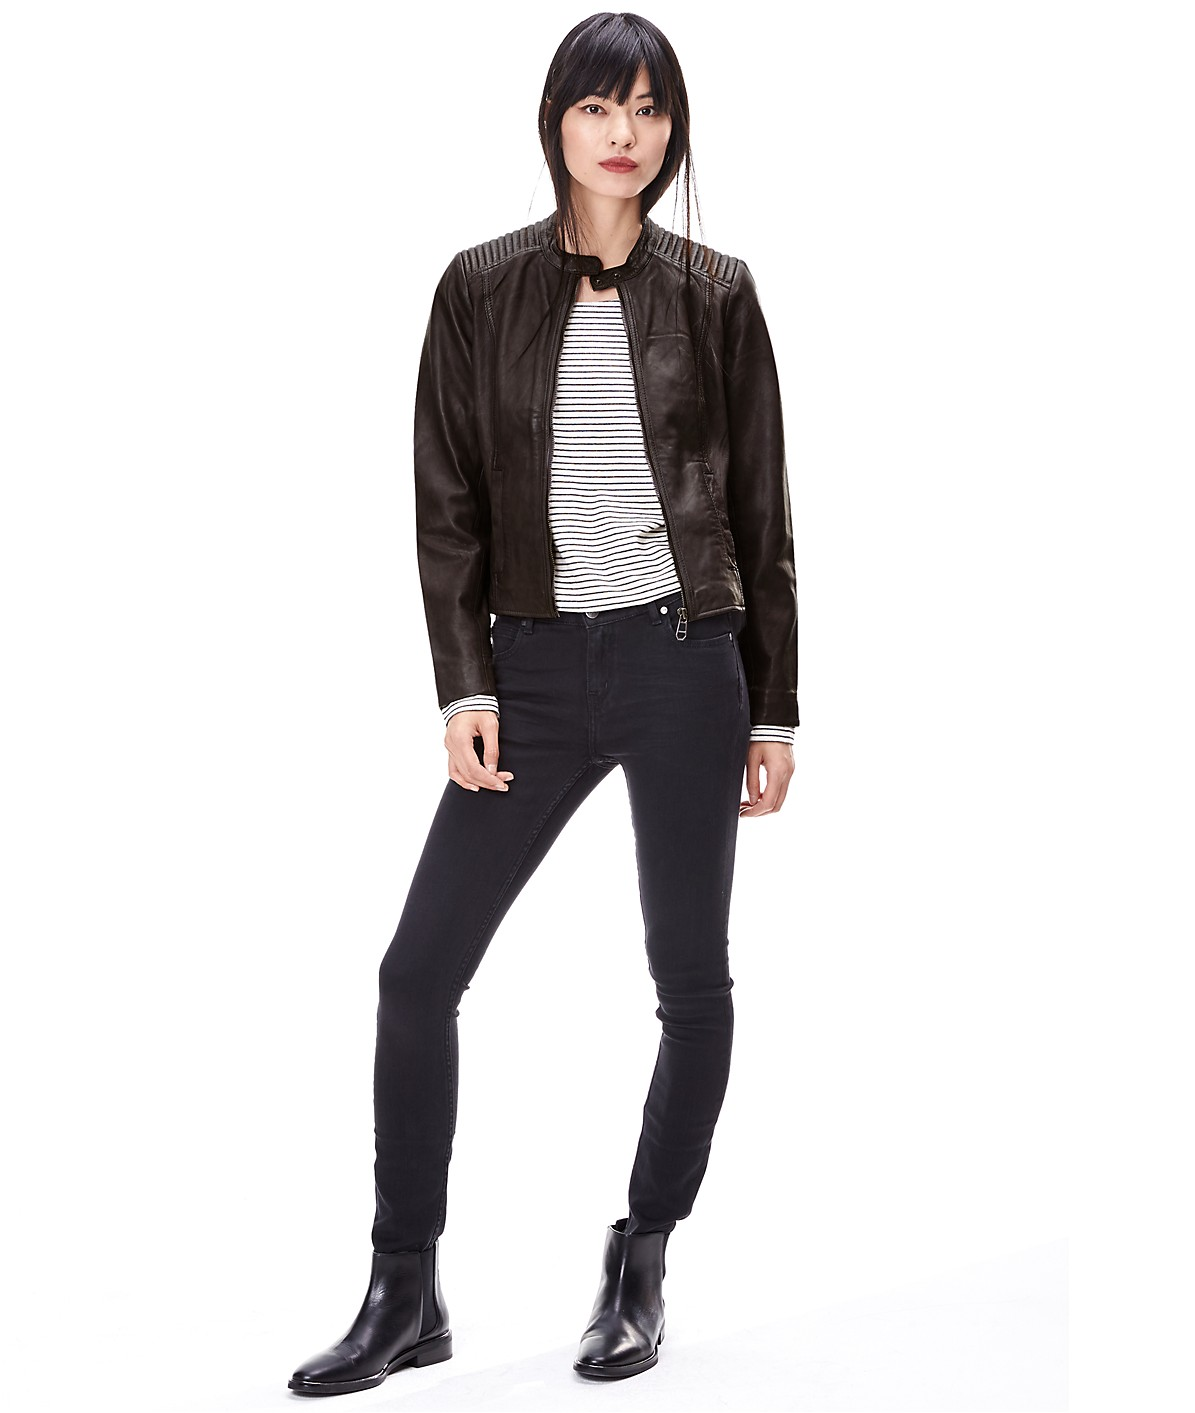 Leather jacket W1167100 from liebeskind